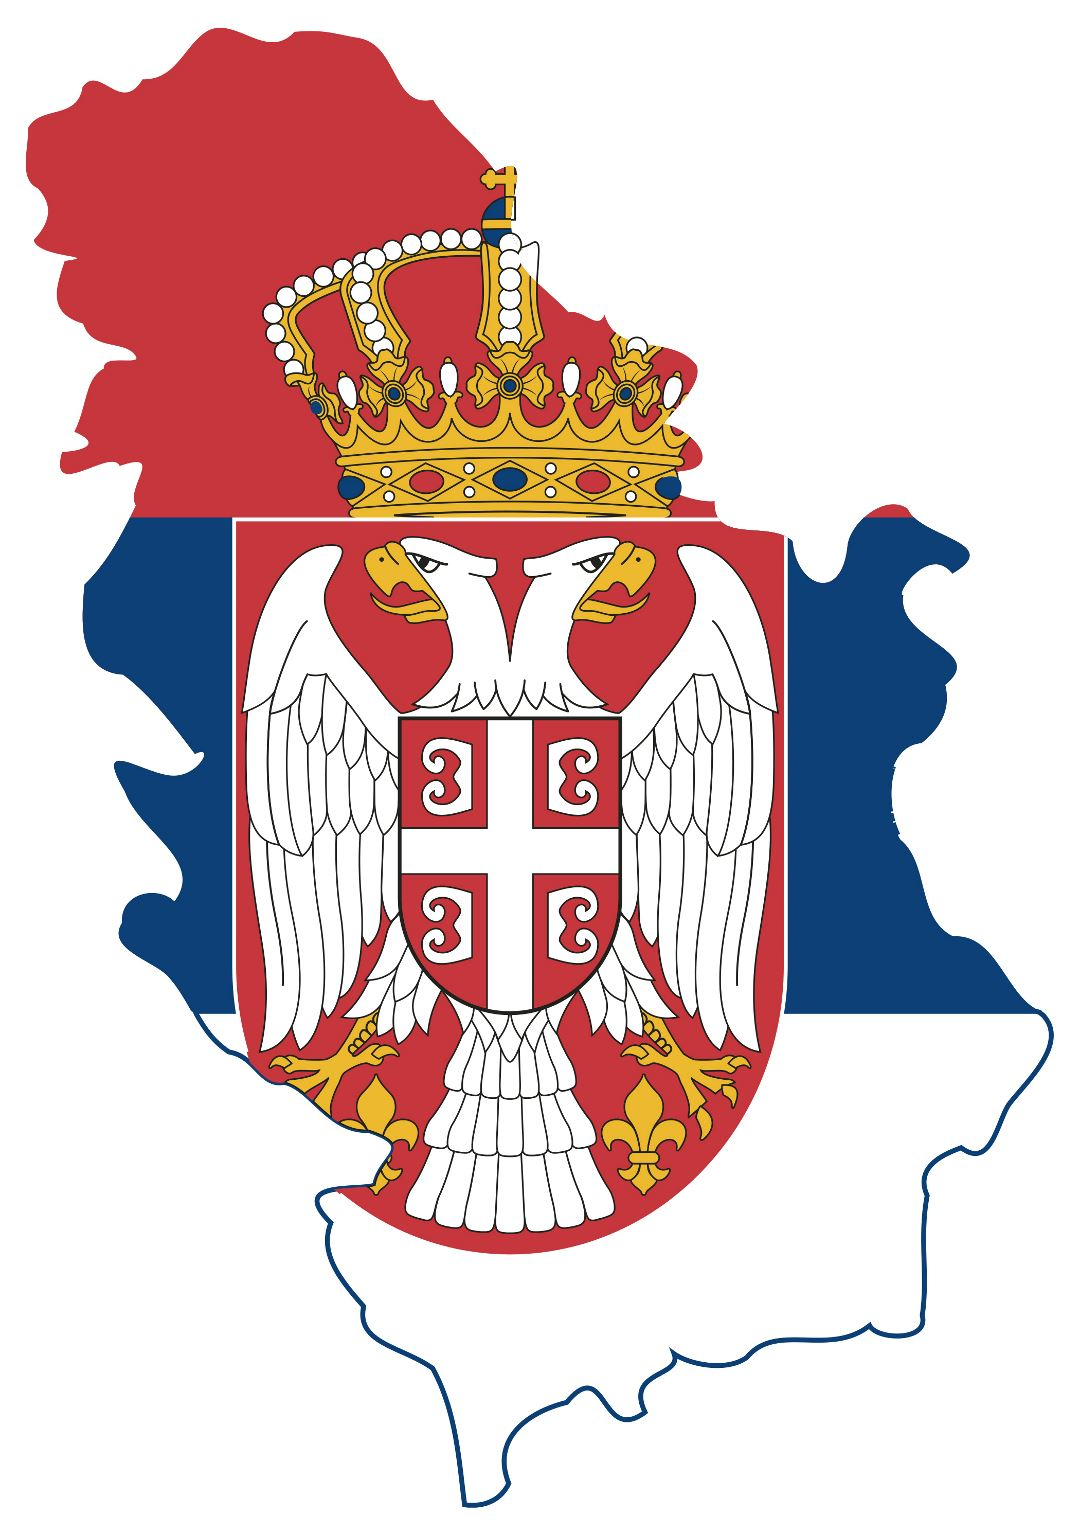 Large flag map of Serbia